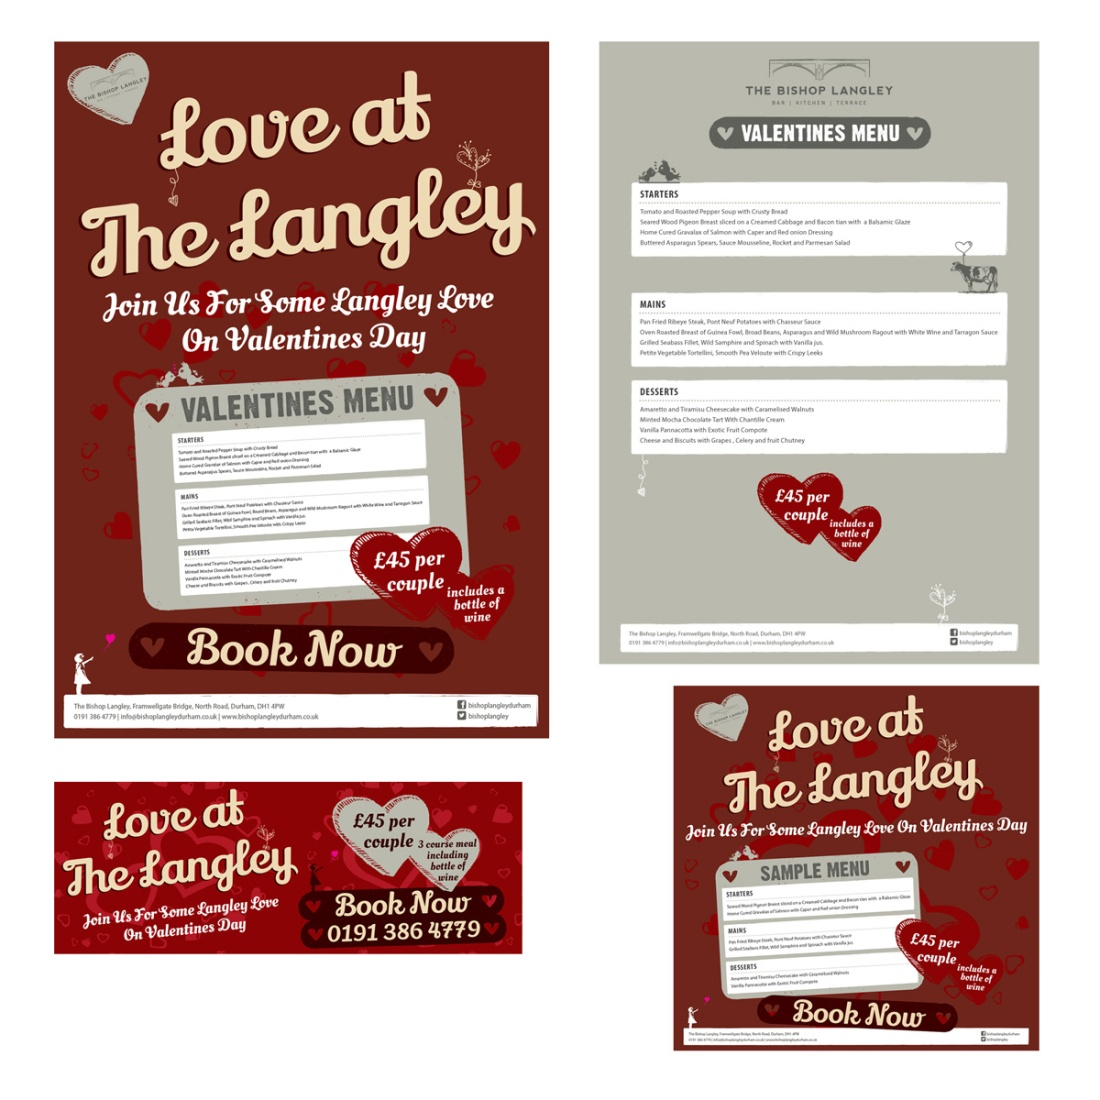 Valentines Day Promotional Package - Poster, Menu, Facebook Cover, Facebook News Feed Splash